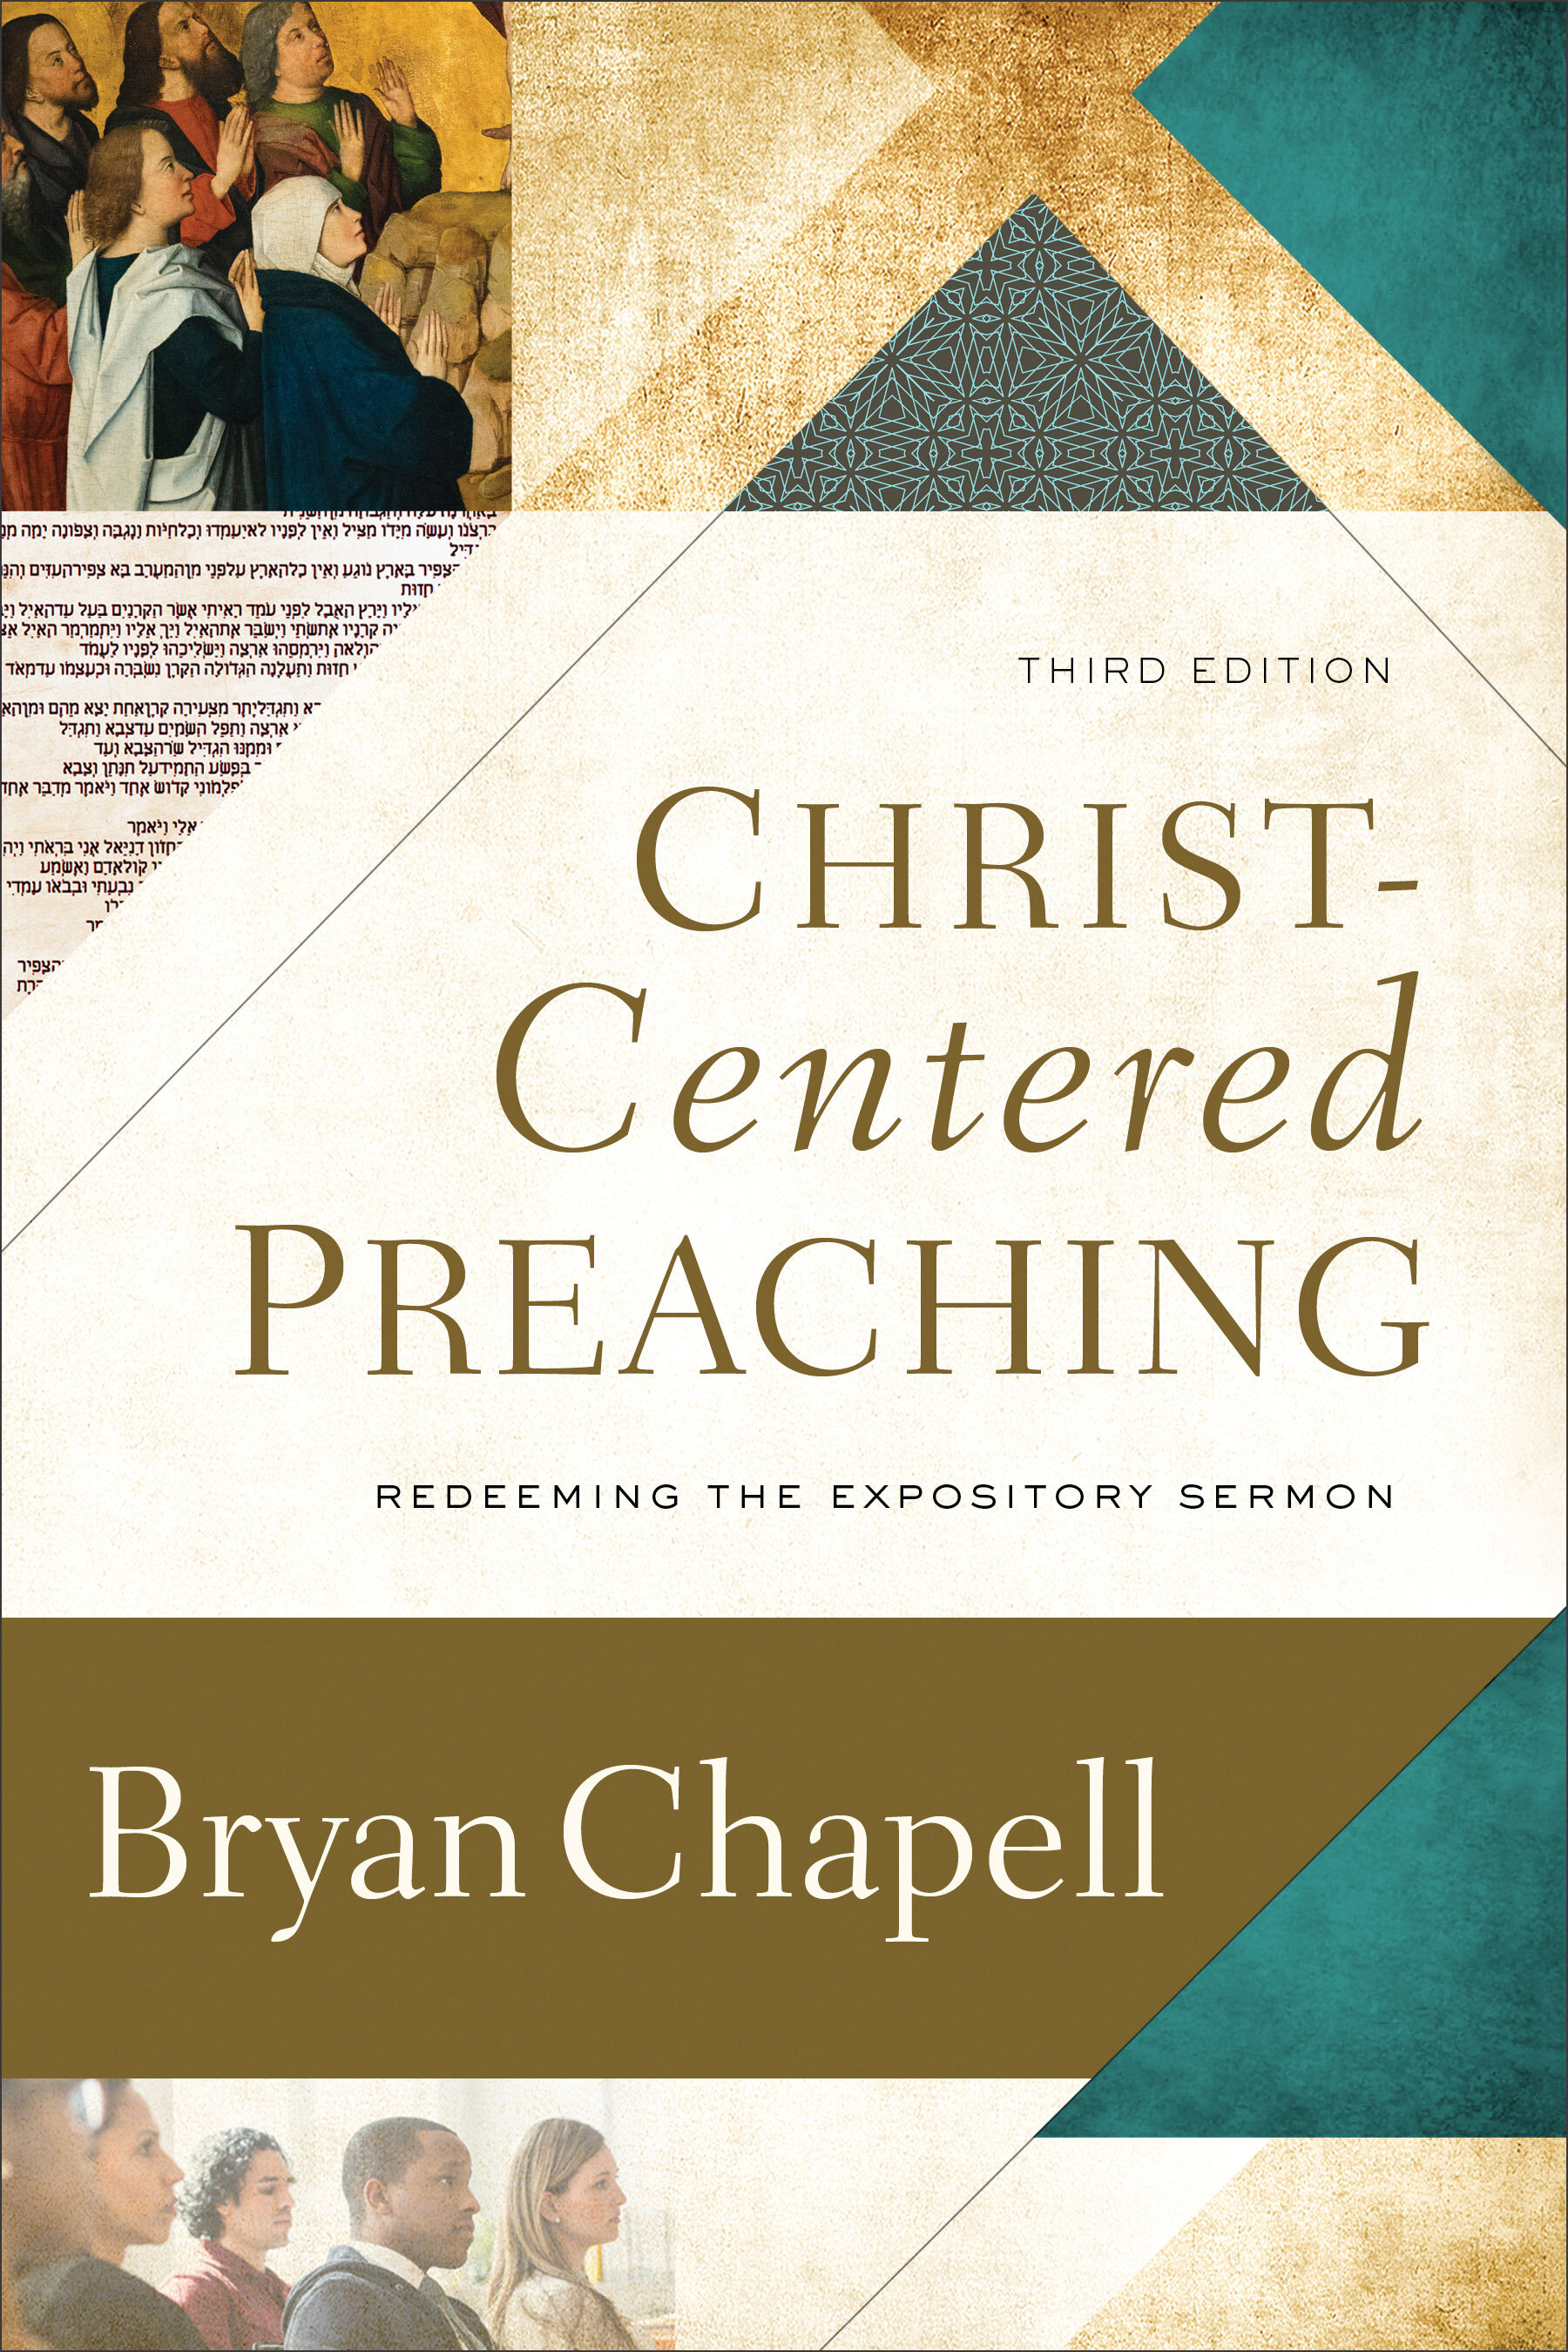 Christ-Centered Preaching: Redeeming the Expository Sermon, 3rd ed.